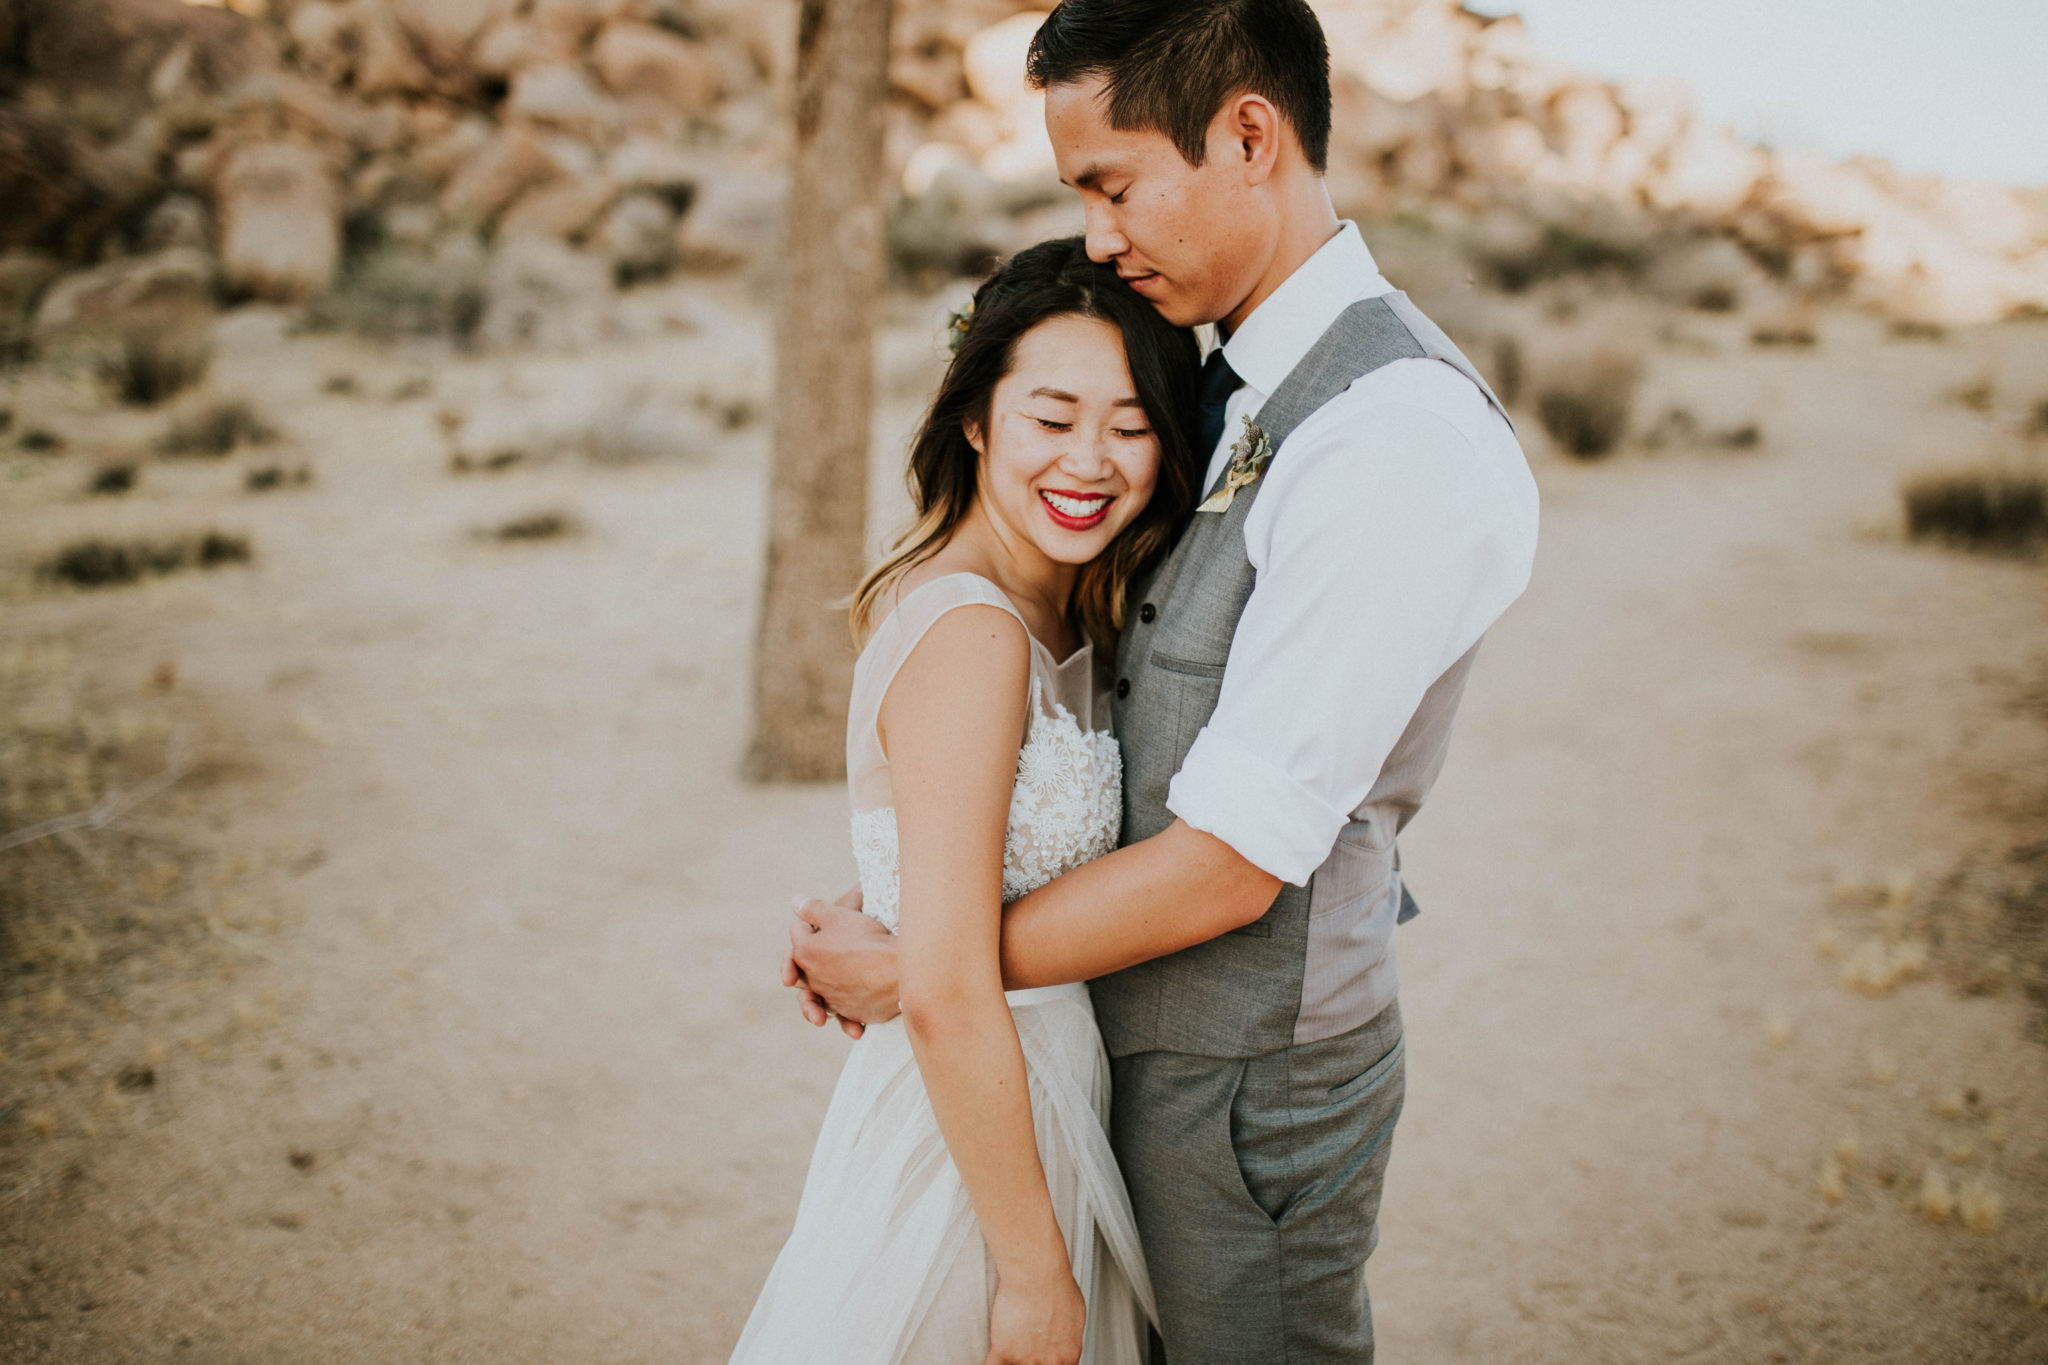 Mandy & Joey Joshua Tree Elopement California Wedding Photographer-154